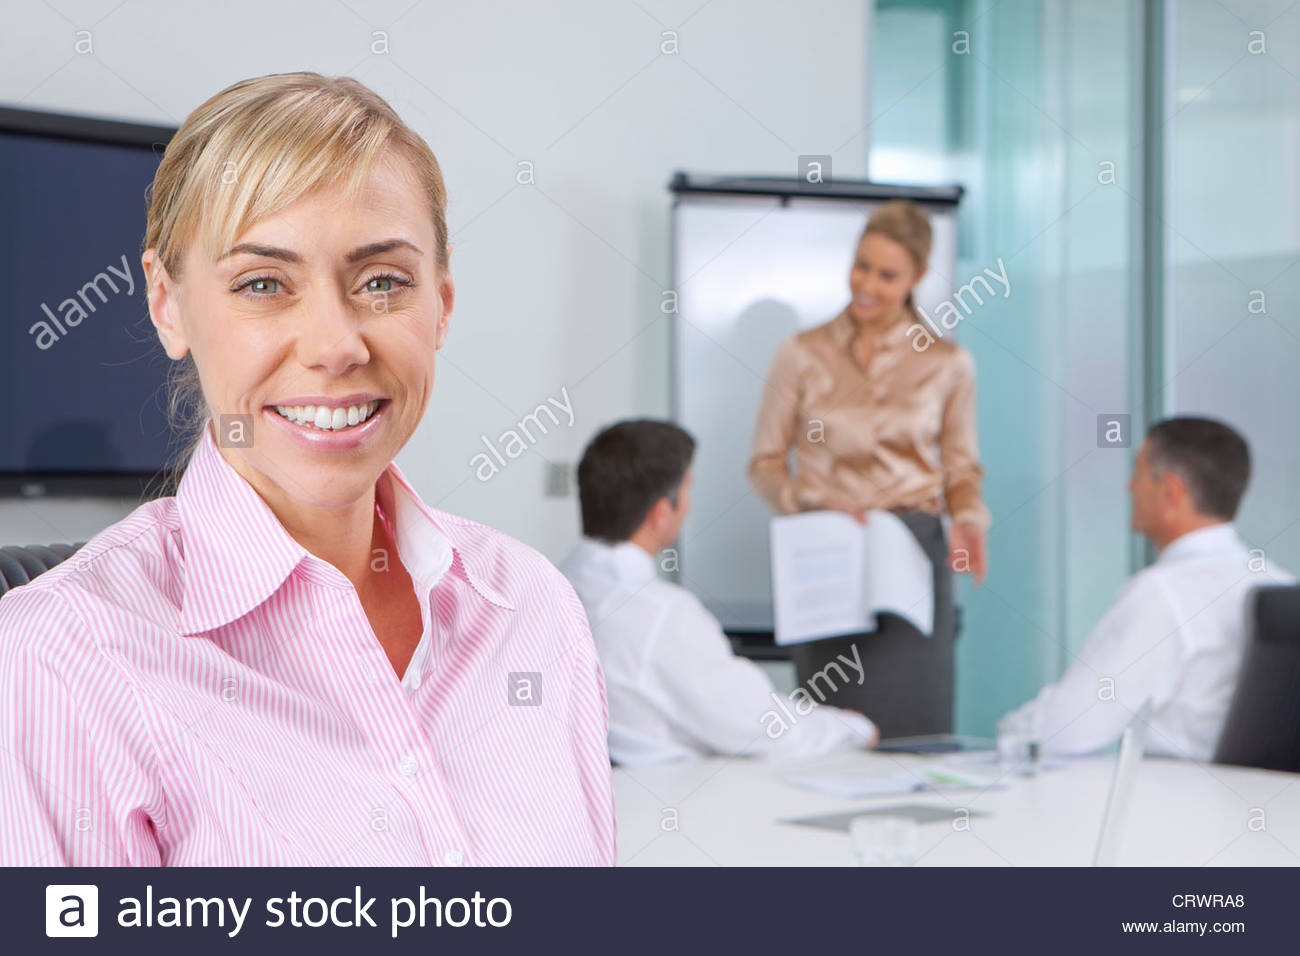 Portrait of smiling businesswoman in meeting in conference room - Stock Image